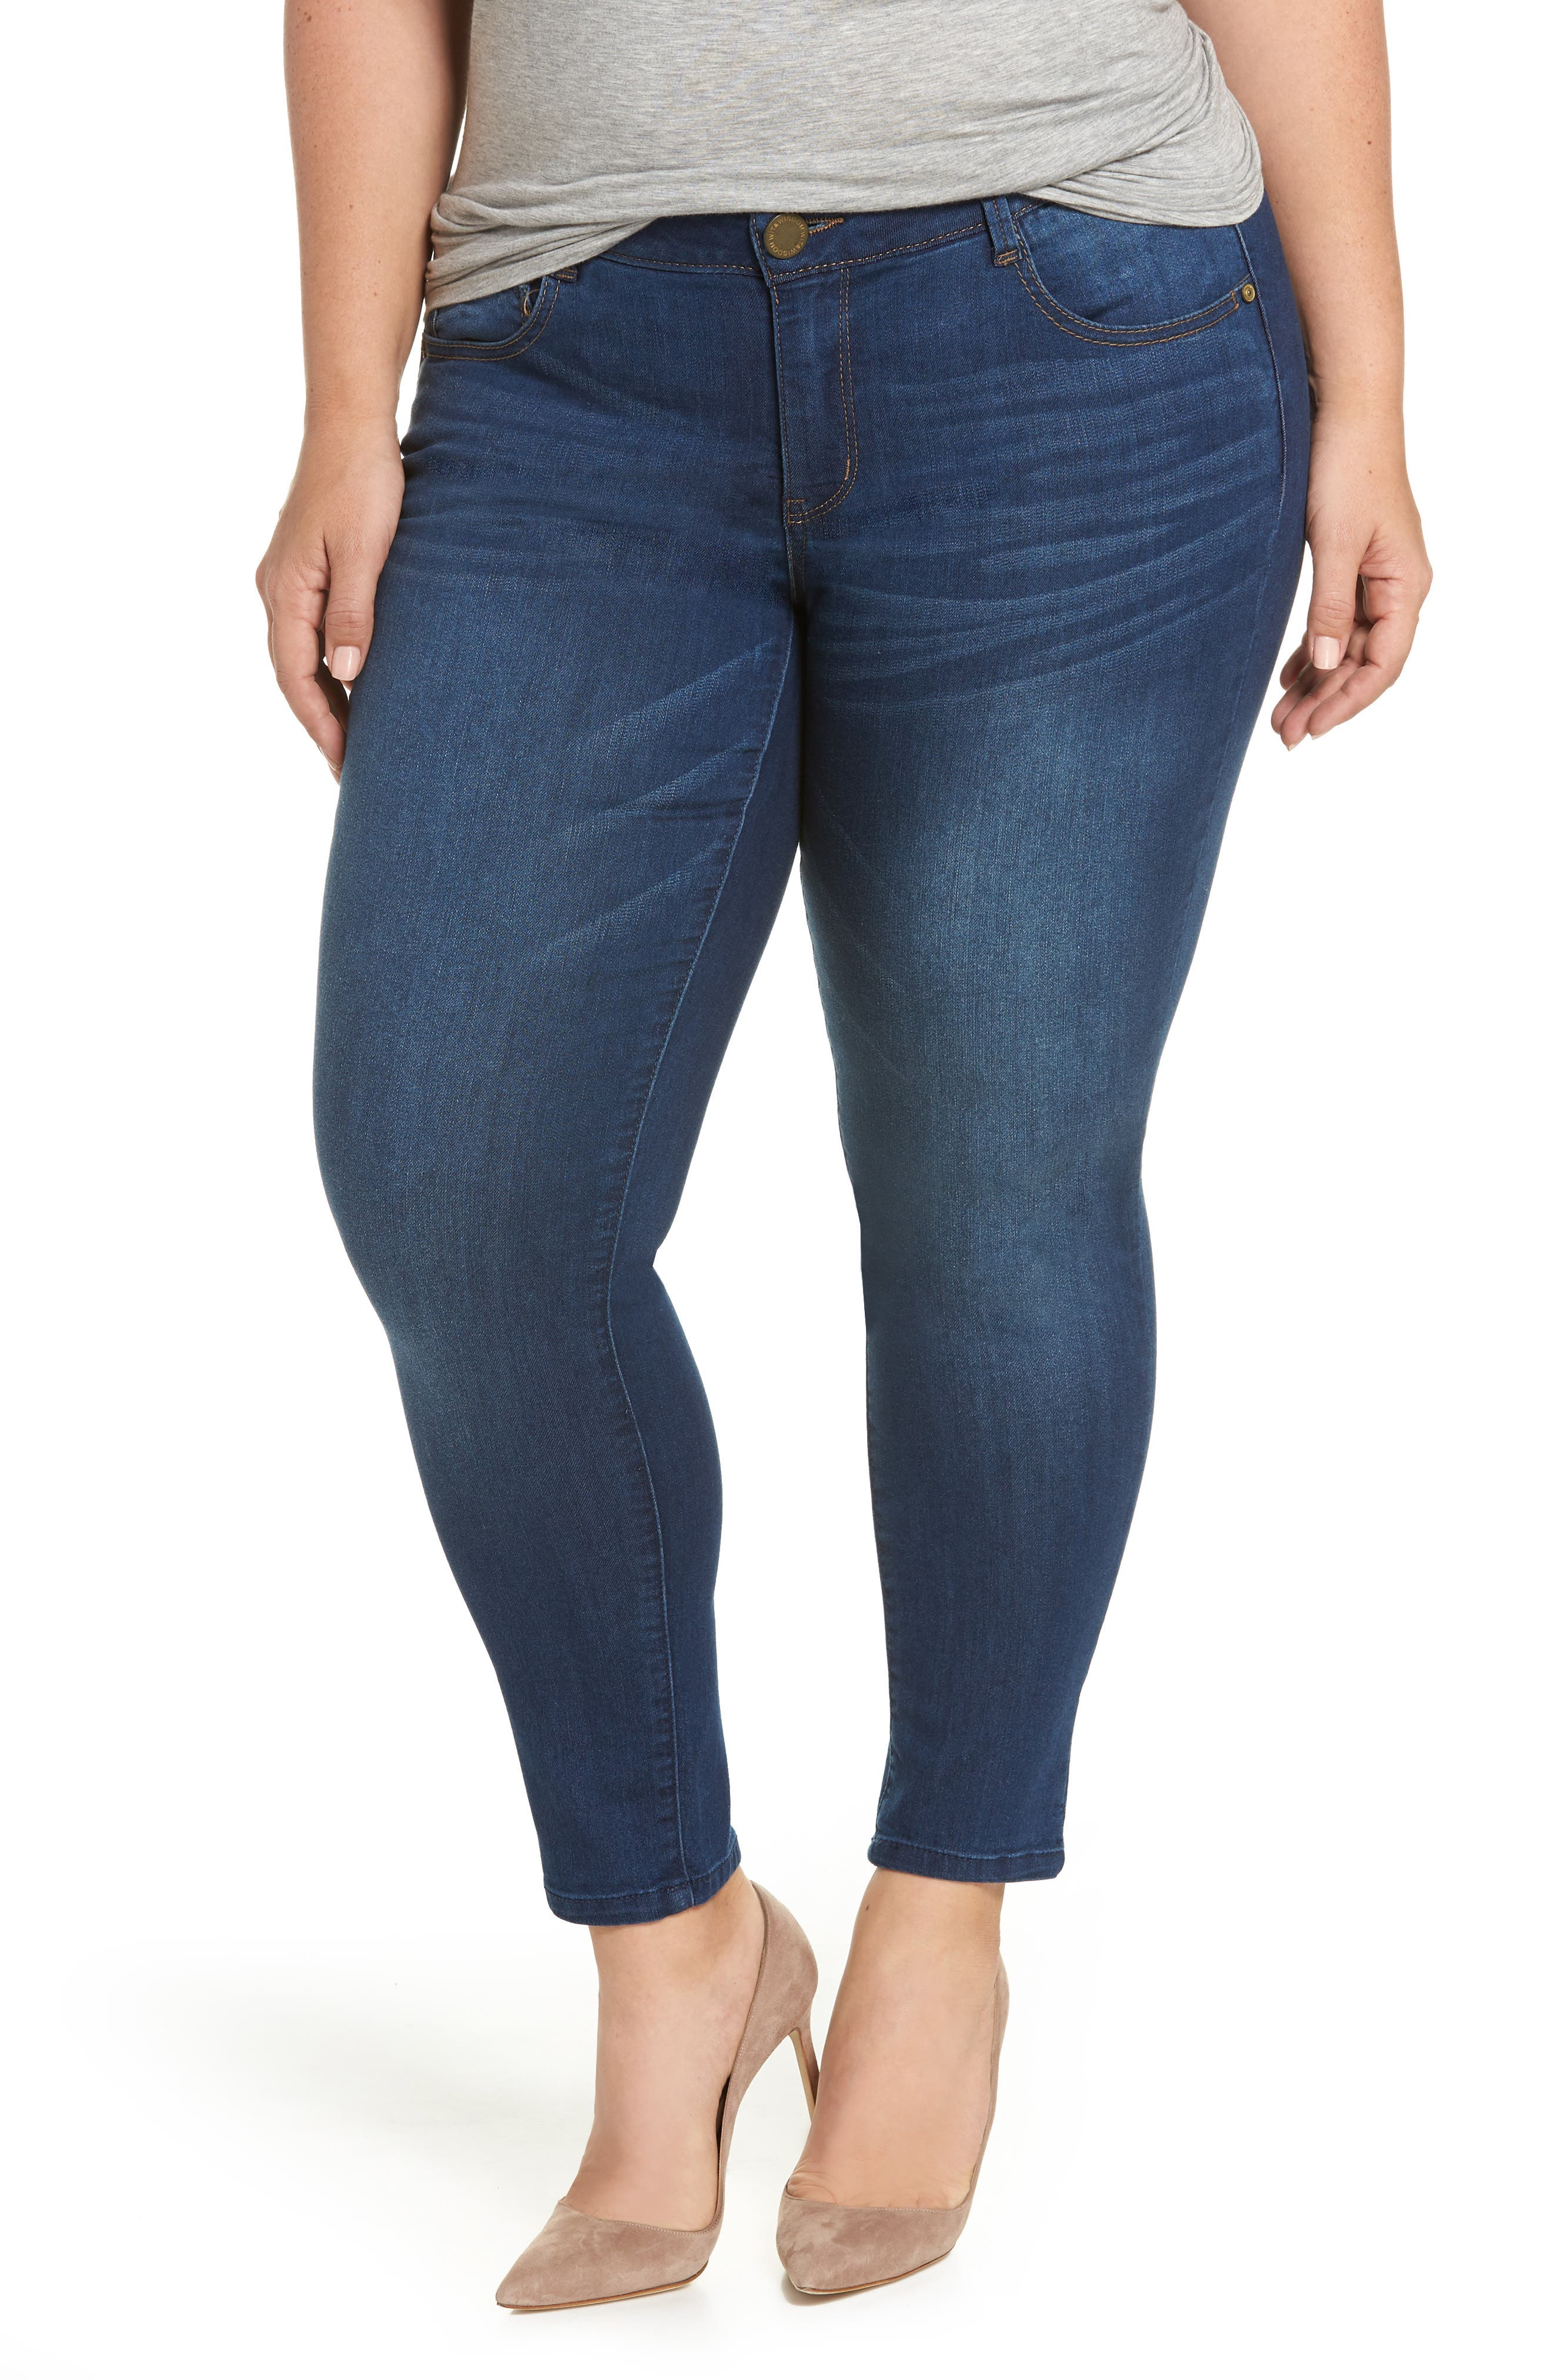 Main Image - Wit & Wisdom Ab-solution Ankle Skimmer Jeans (Plus Size) (Nordstrom Exclusive)